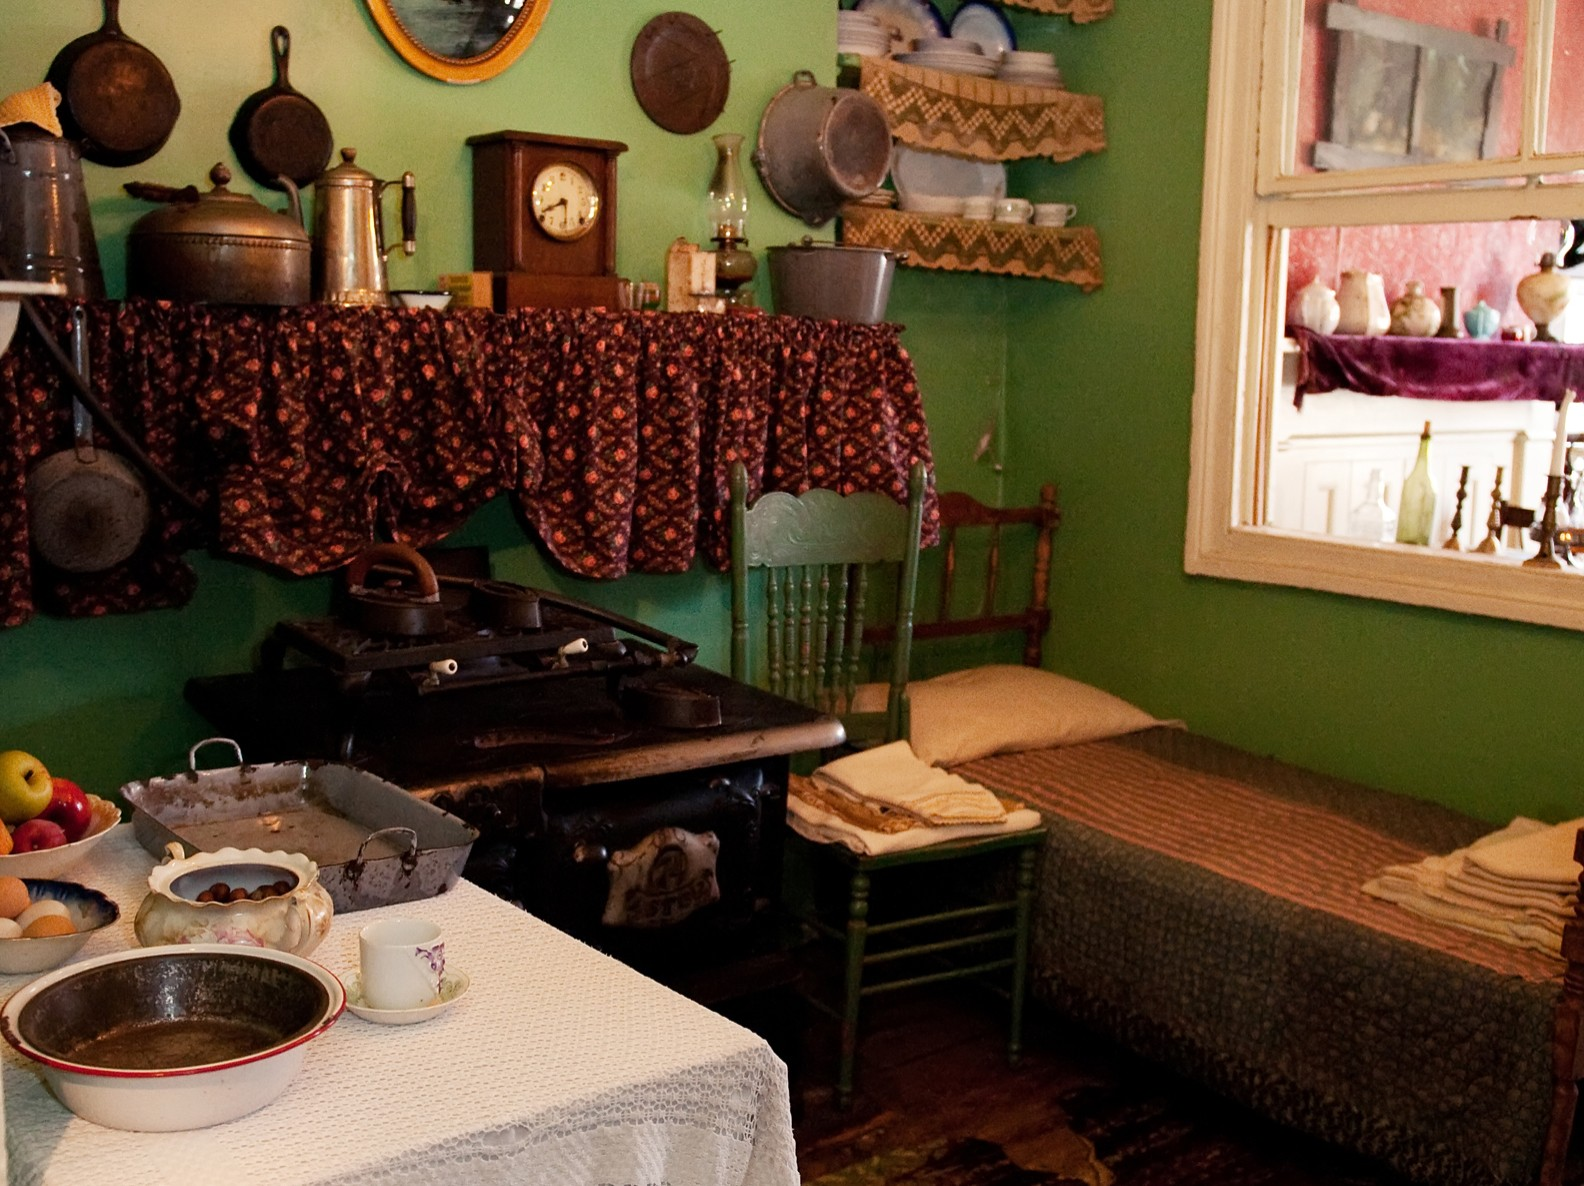 Recreated Rogarshevsky family kitchen at 97 Orchard Street where a table with food is next to a stove, a chair, and a small bed